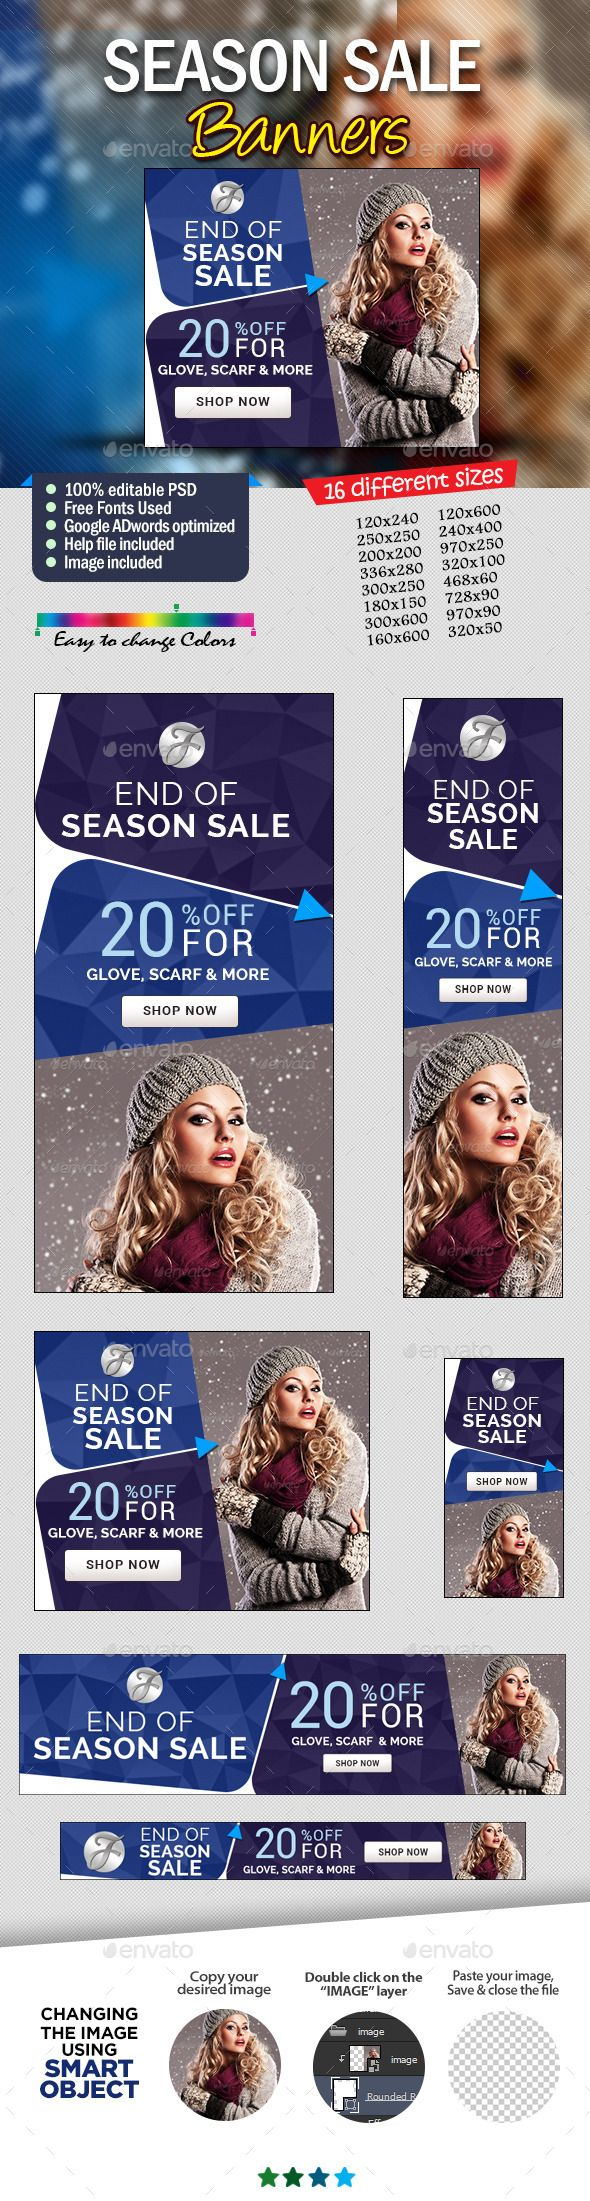 Seasonal Offer Web Banner Design Set Template PSD | Buy and Download: http://graphicriver.net/item/seasonal-offer-banner-design-set/9134205?WT.ac=category_thumb&WT.z_author=doto&ref=ksioks